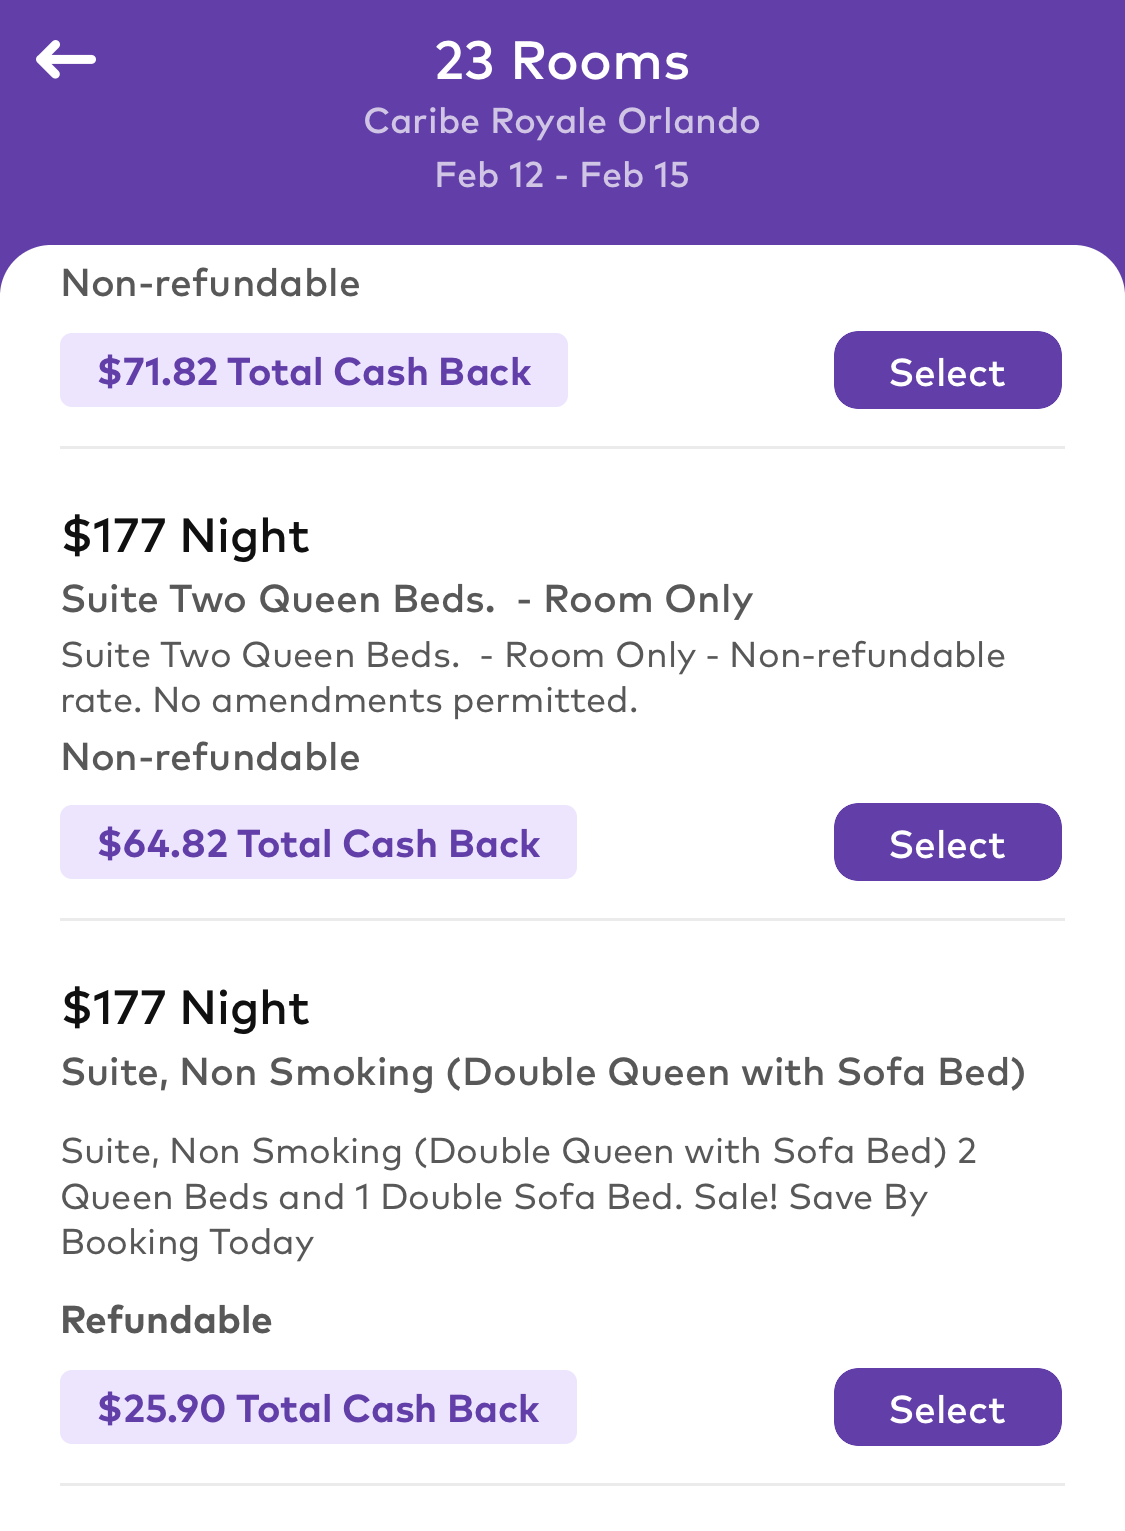 Hotel___Refundable___Non_Refundable_Rooms.png